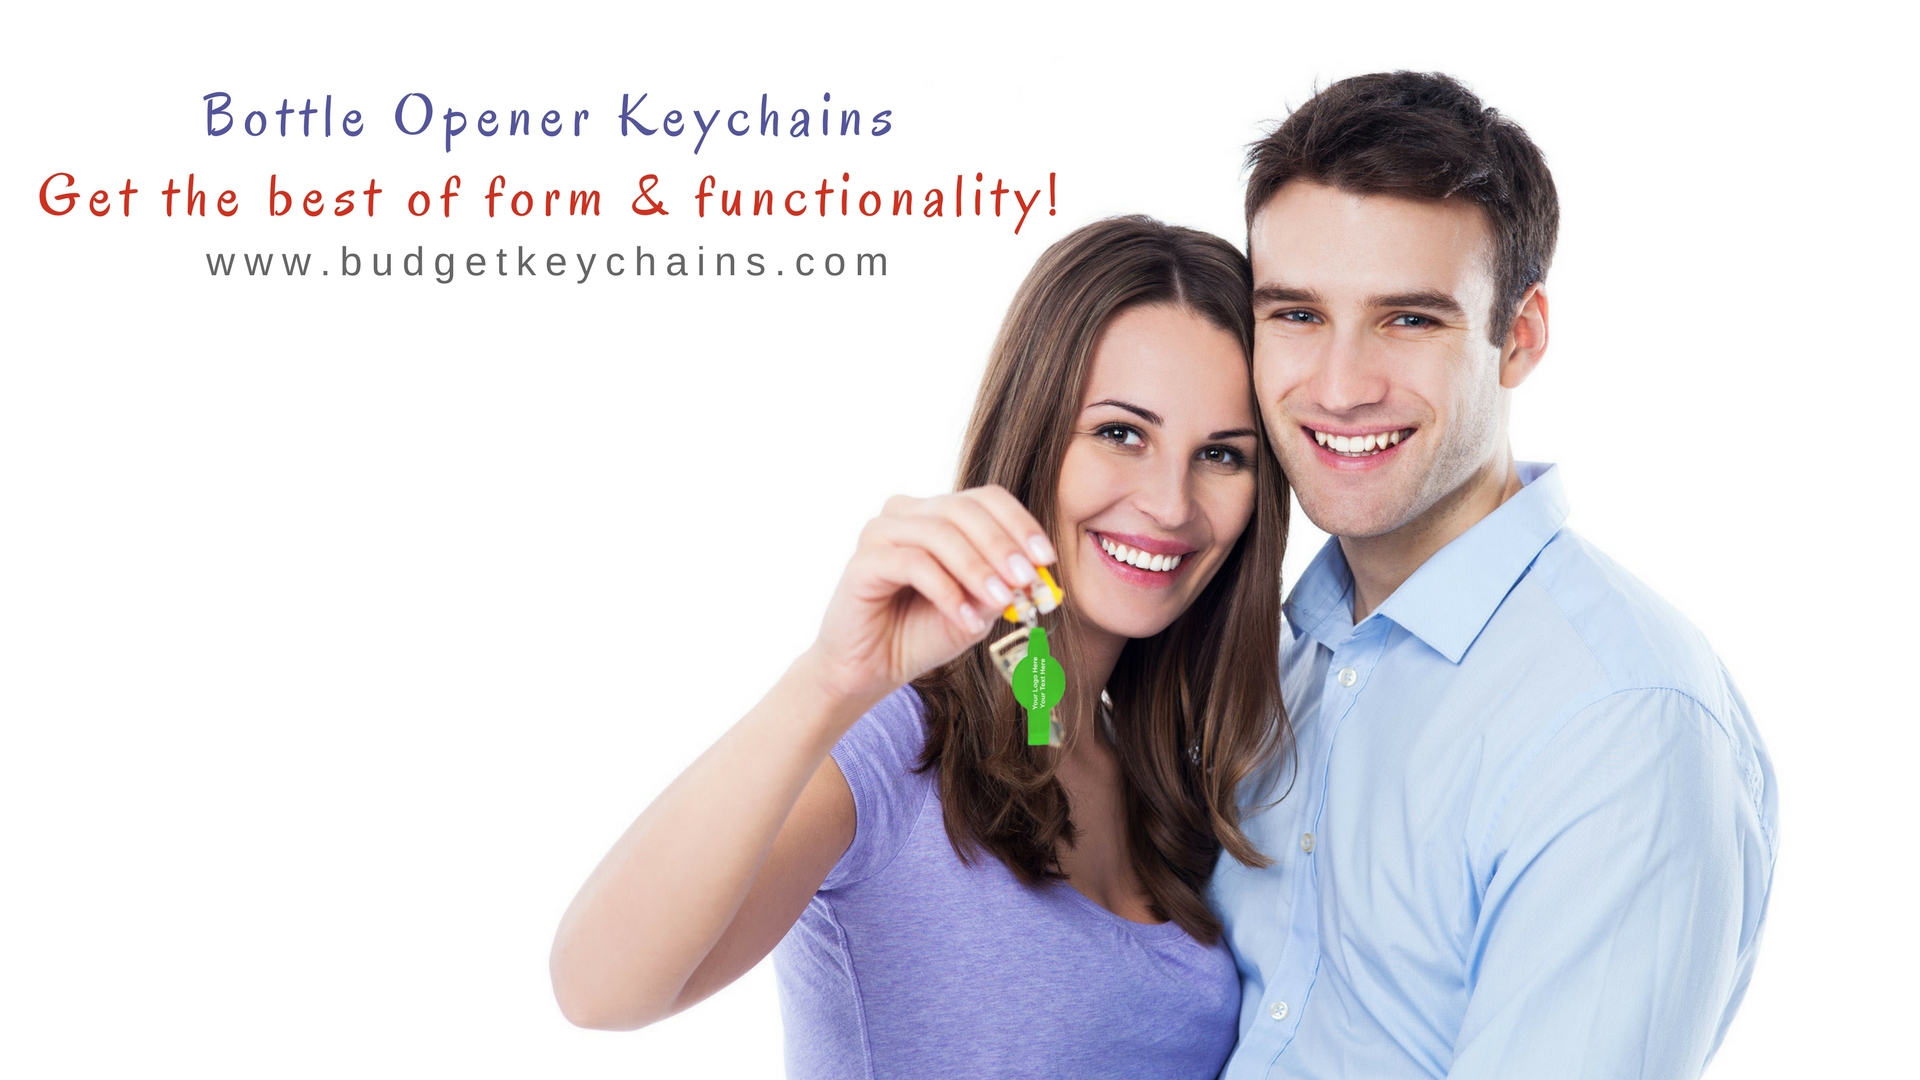 bottle-opener-keychains-businesses